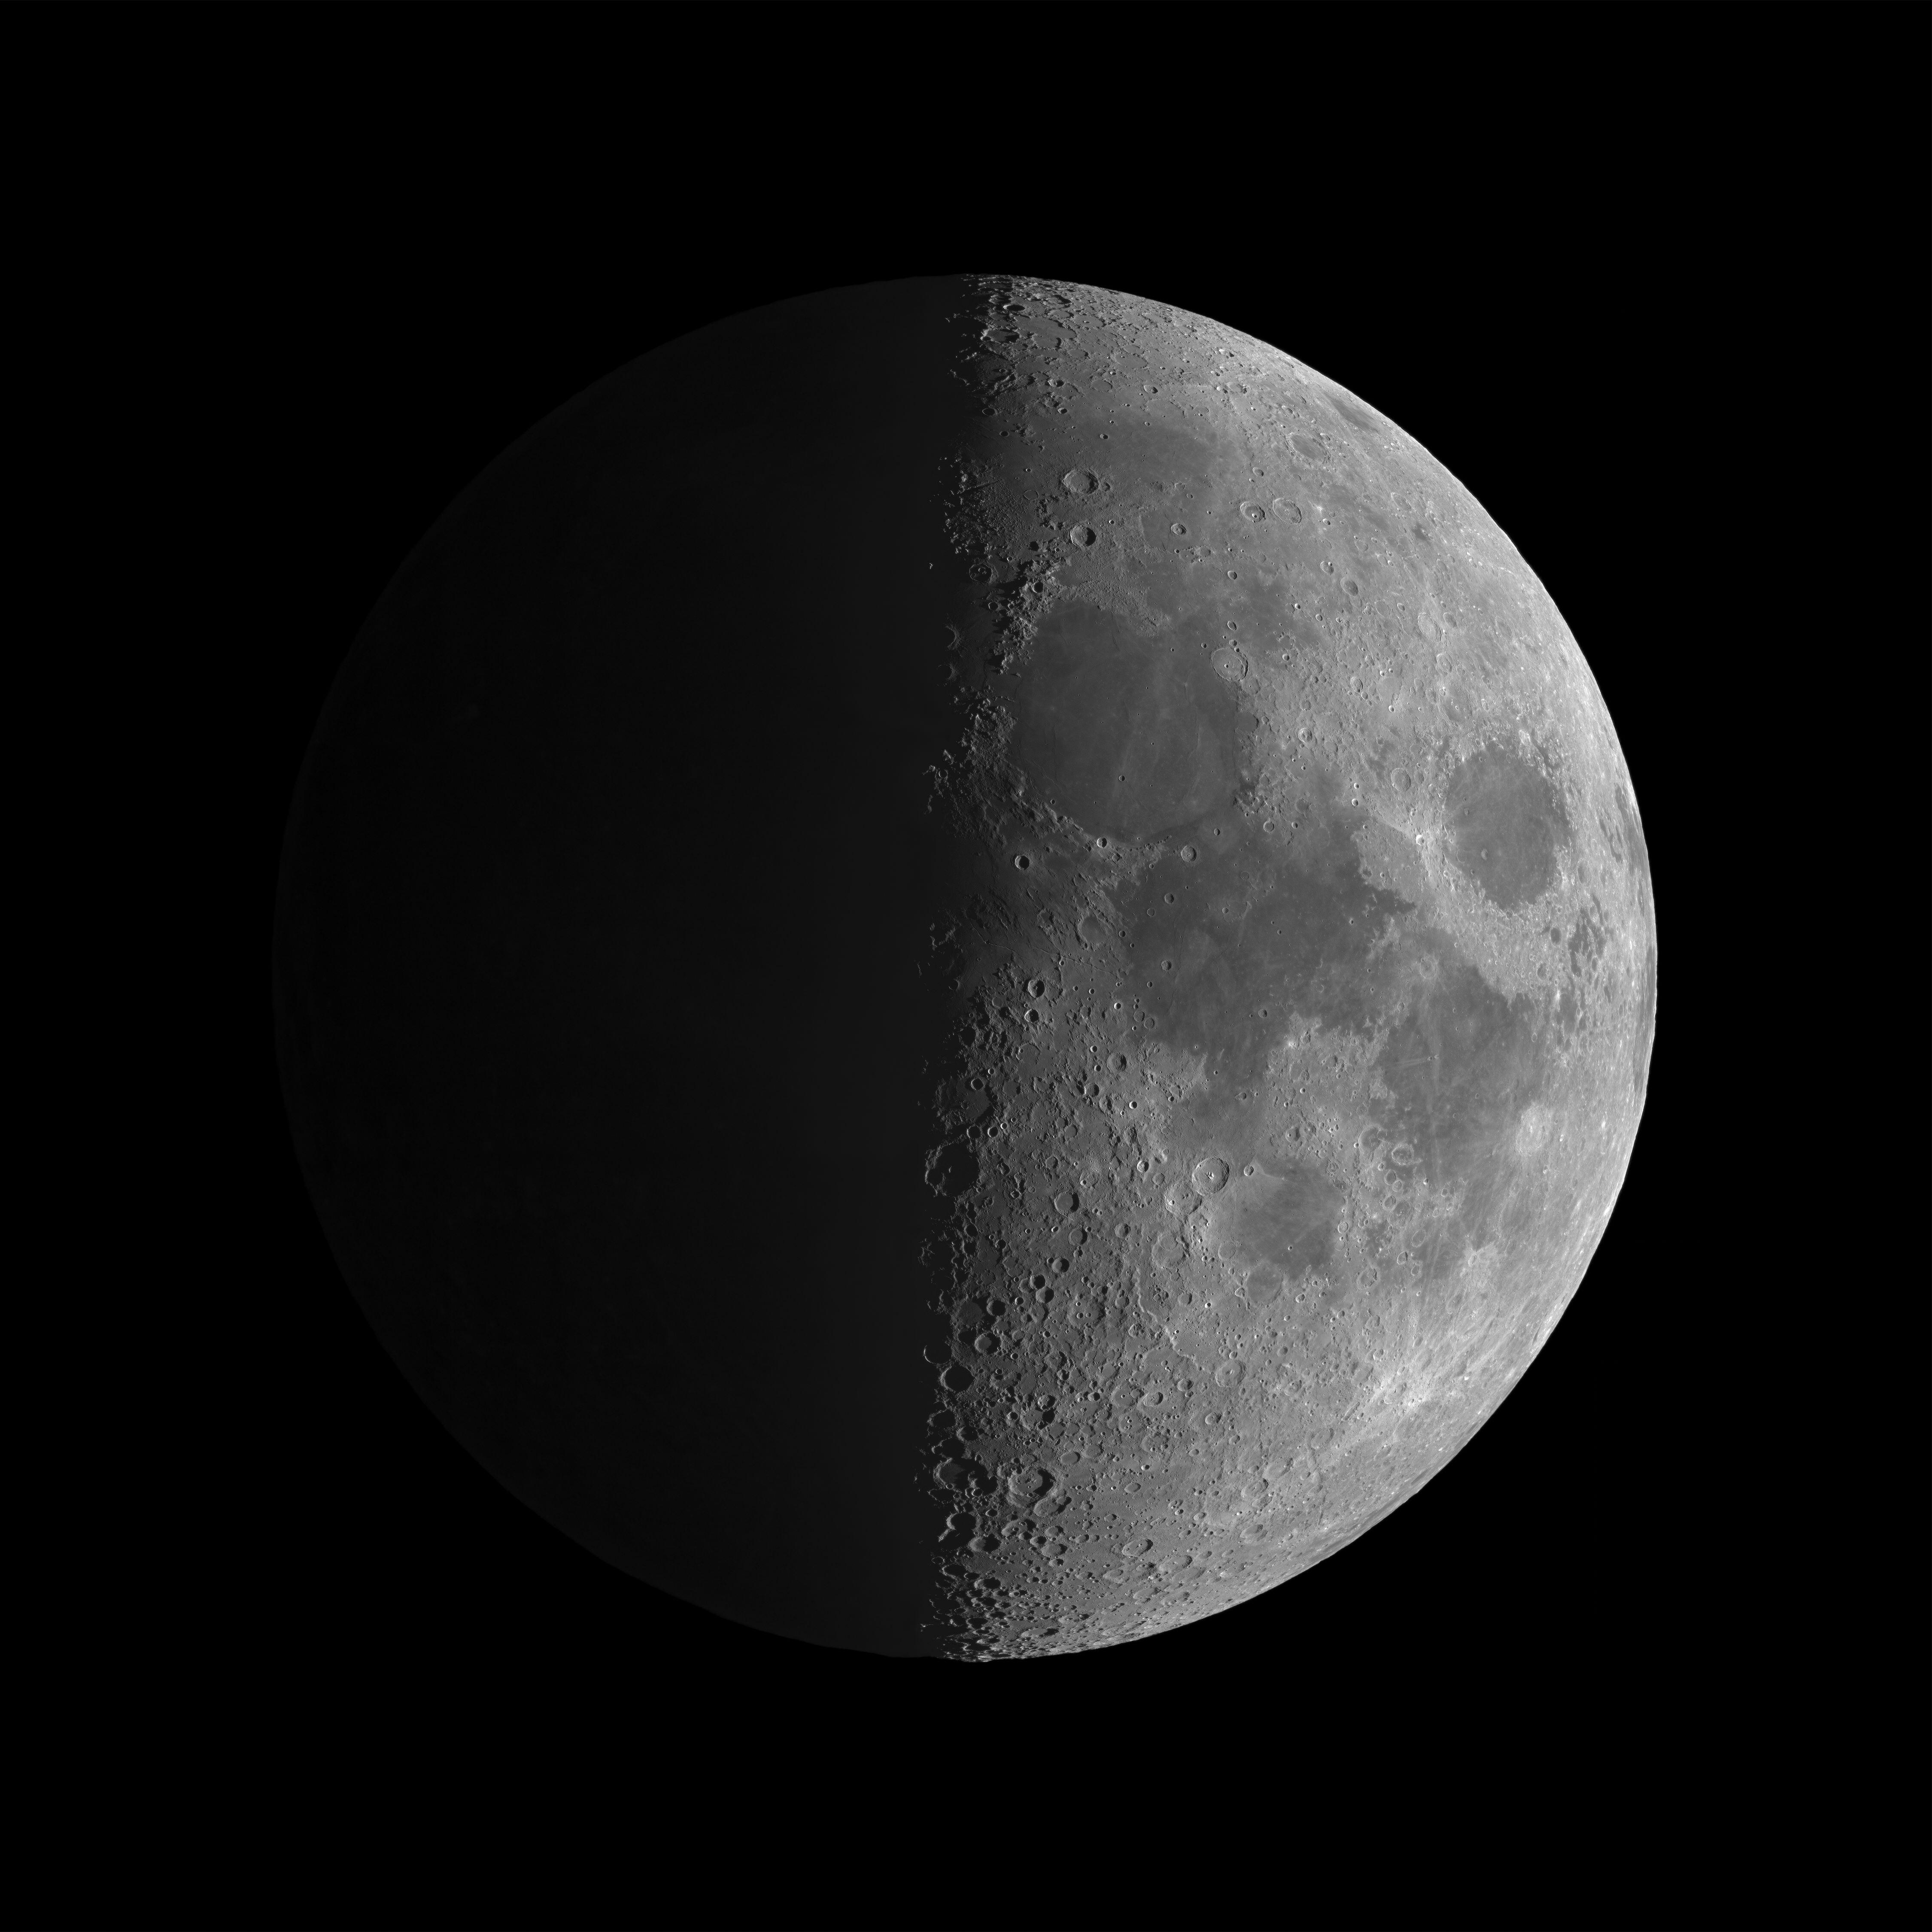 Bild zu András Papp (Hungary) with Full Face of our Moon